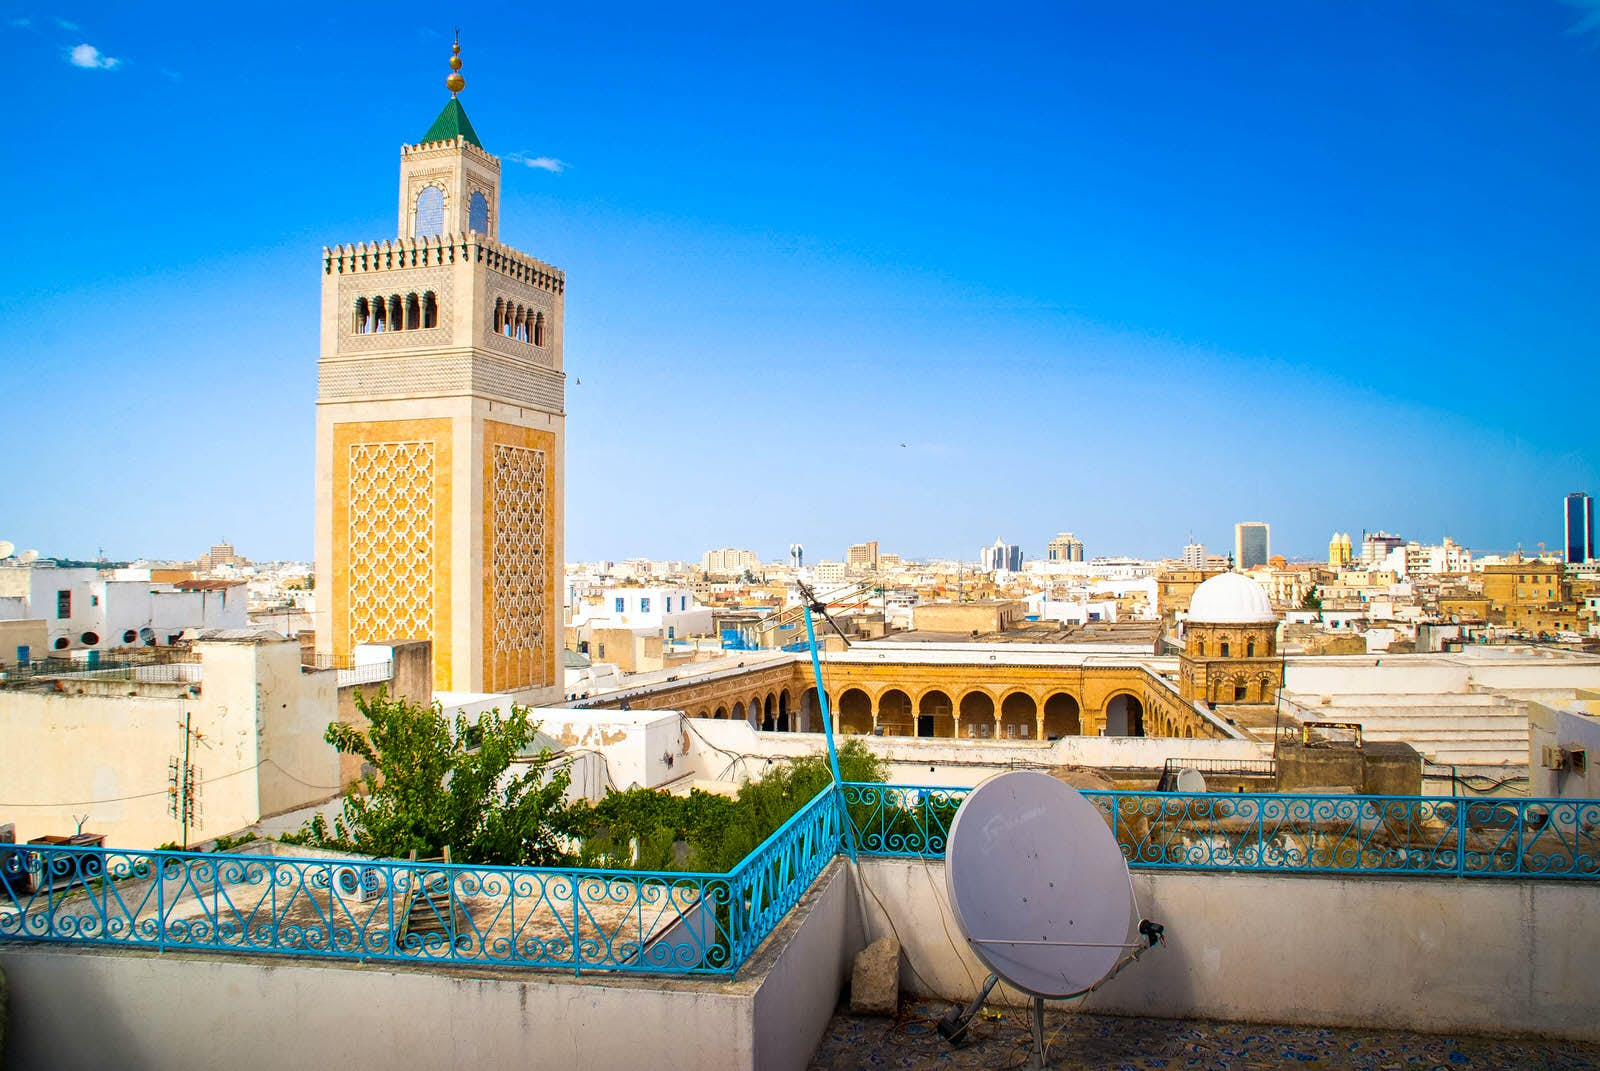 Medina Meanders Exploring The Old Walled City In The